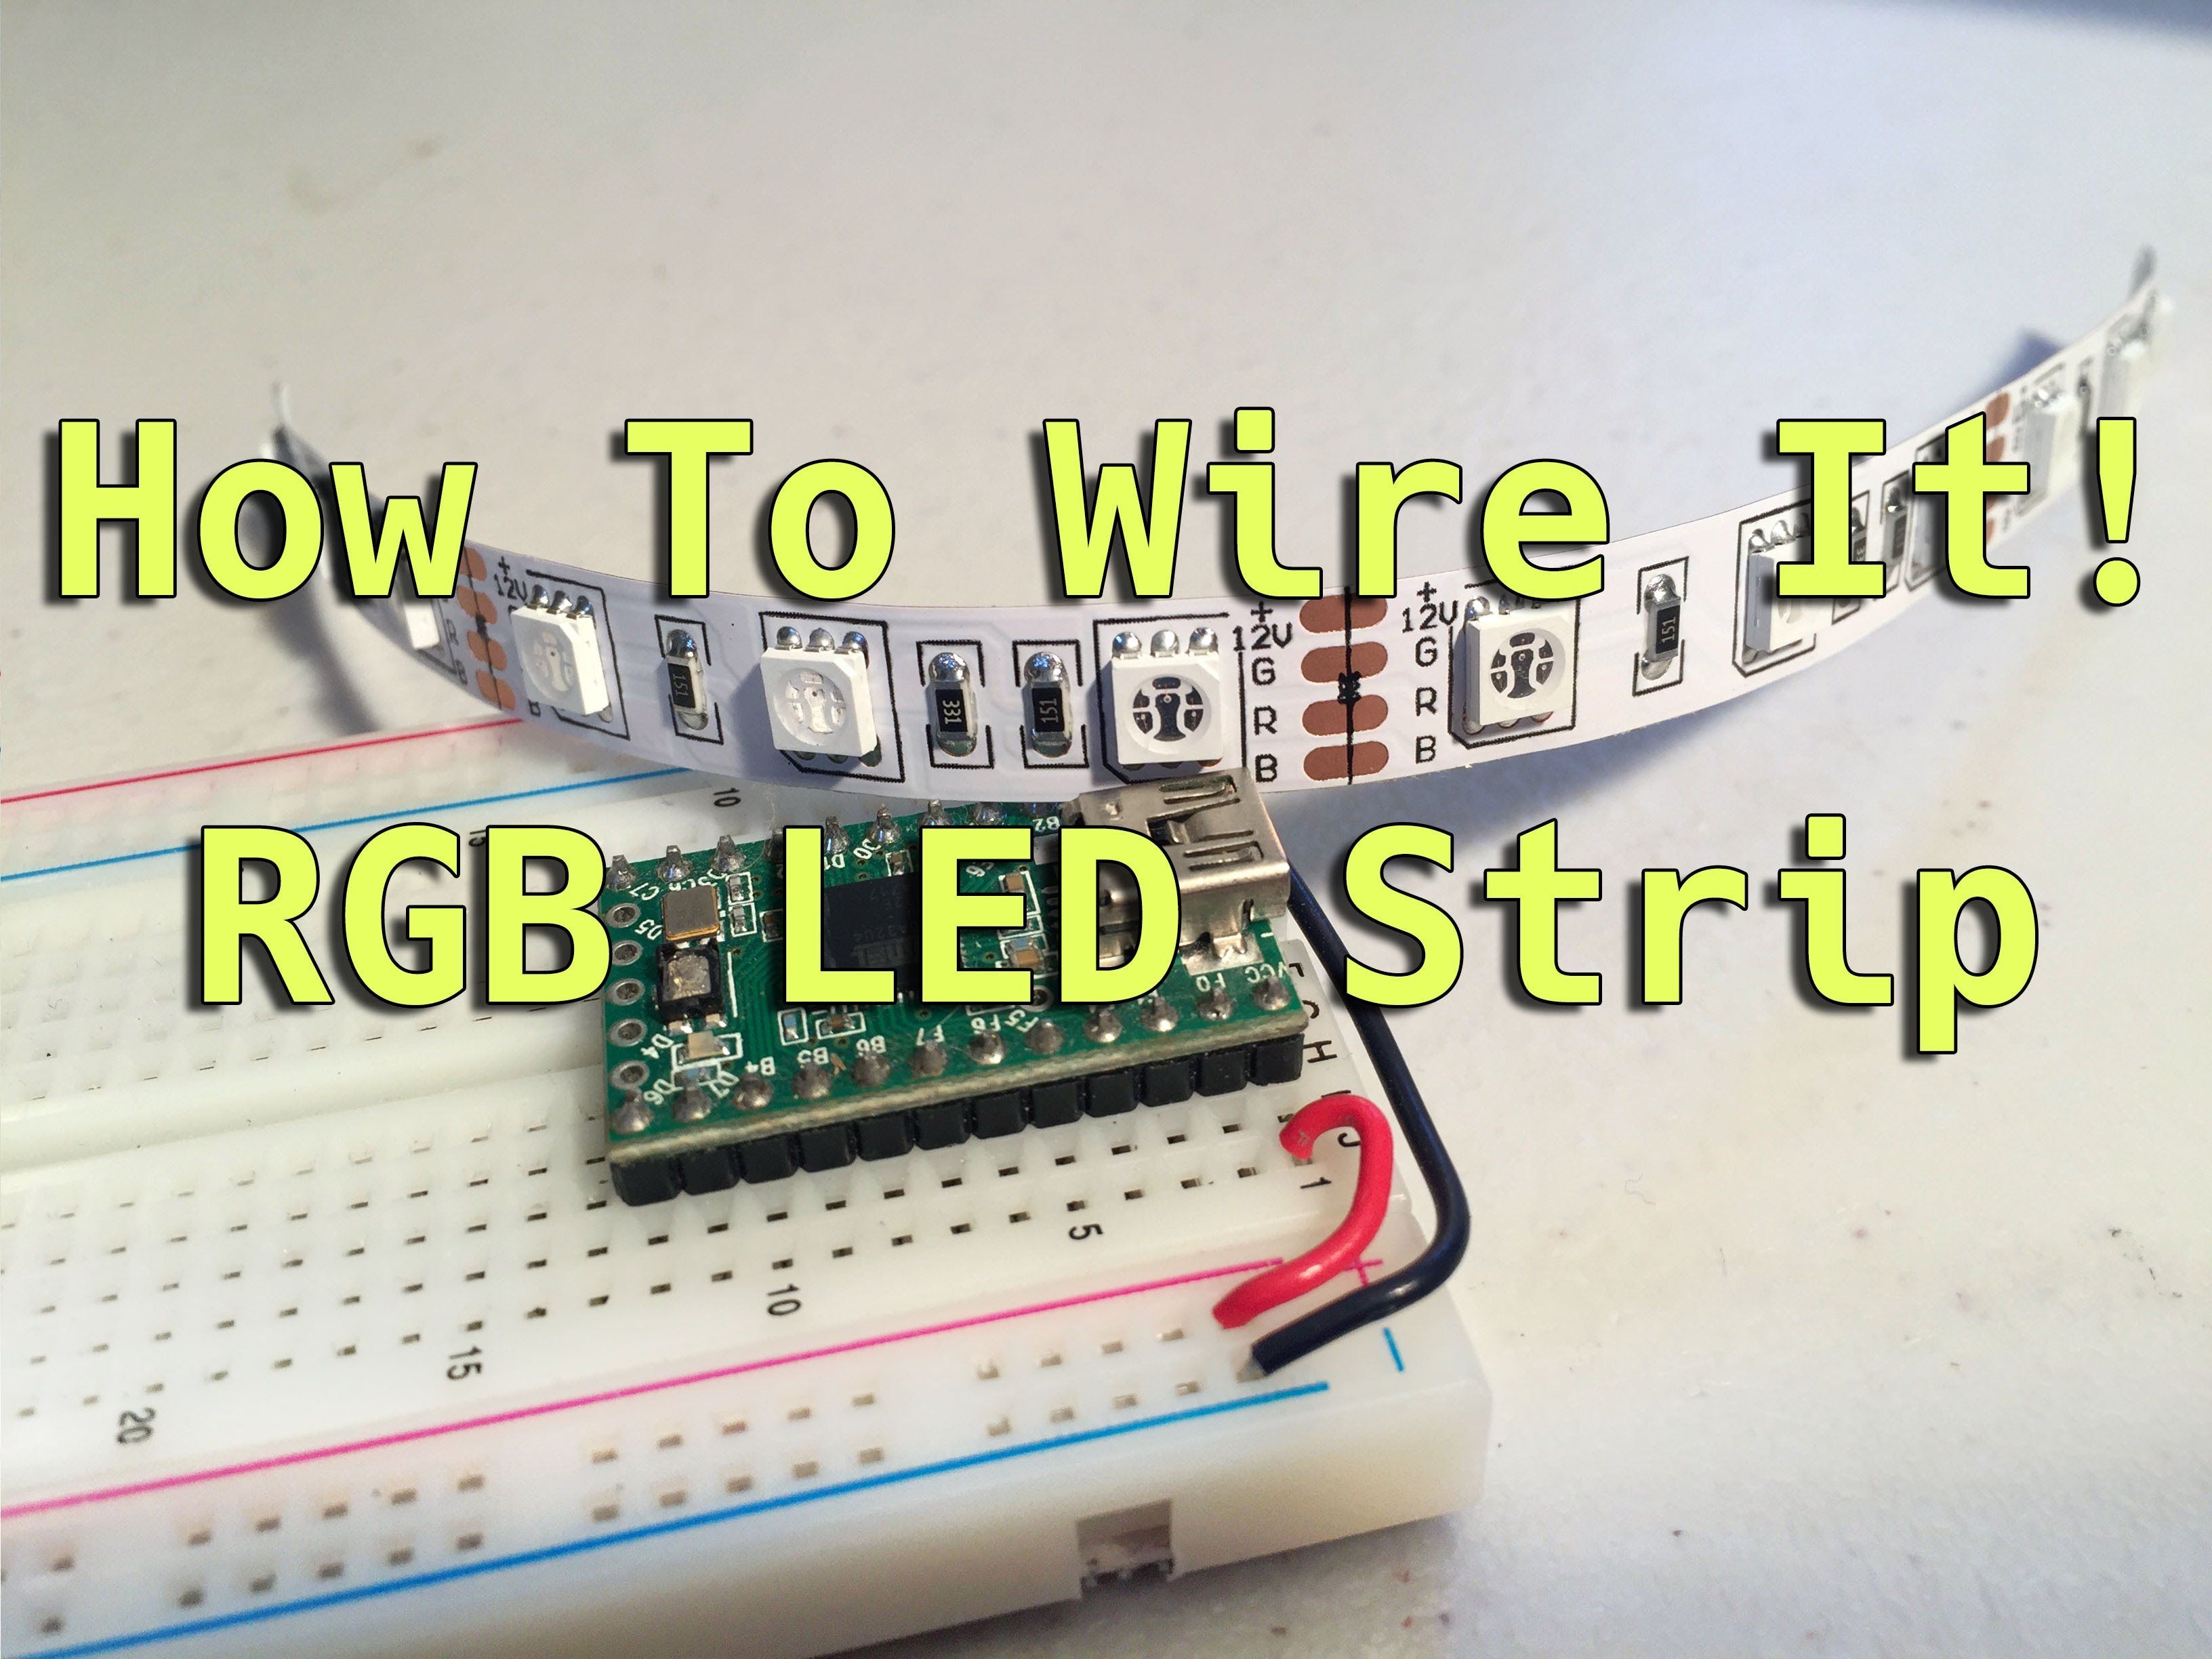 How To Wire It Rgb Led Strip Arduino Picture Of Circuit With